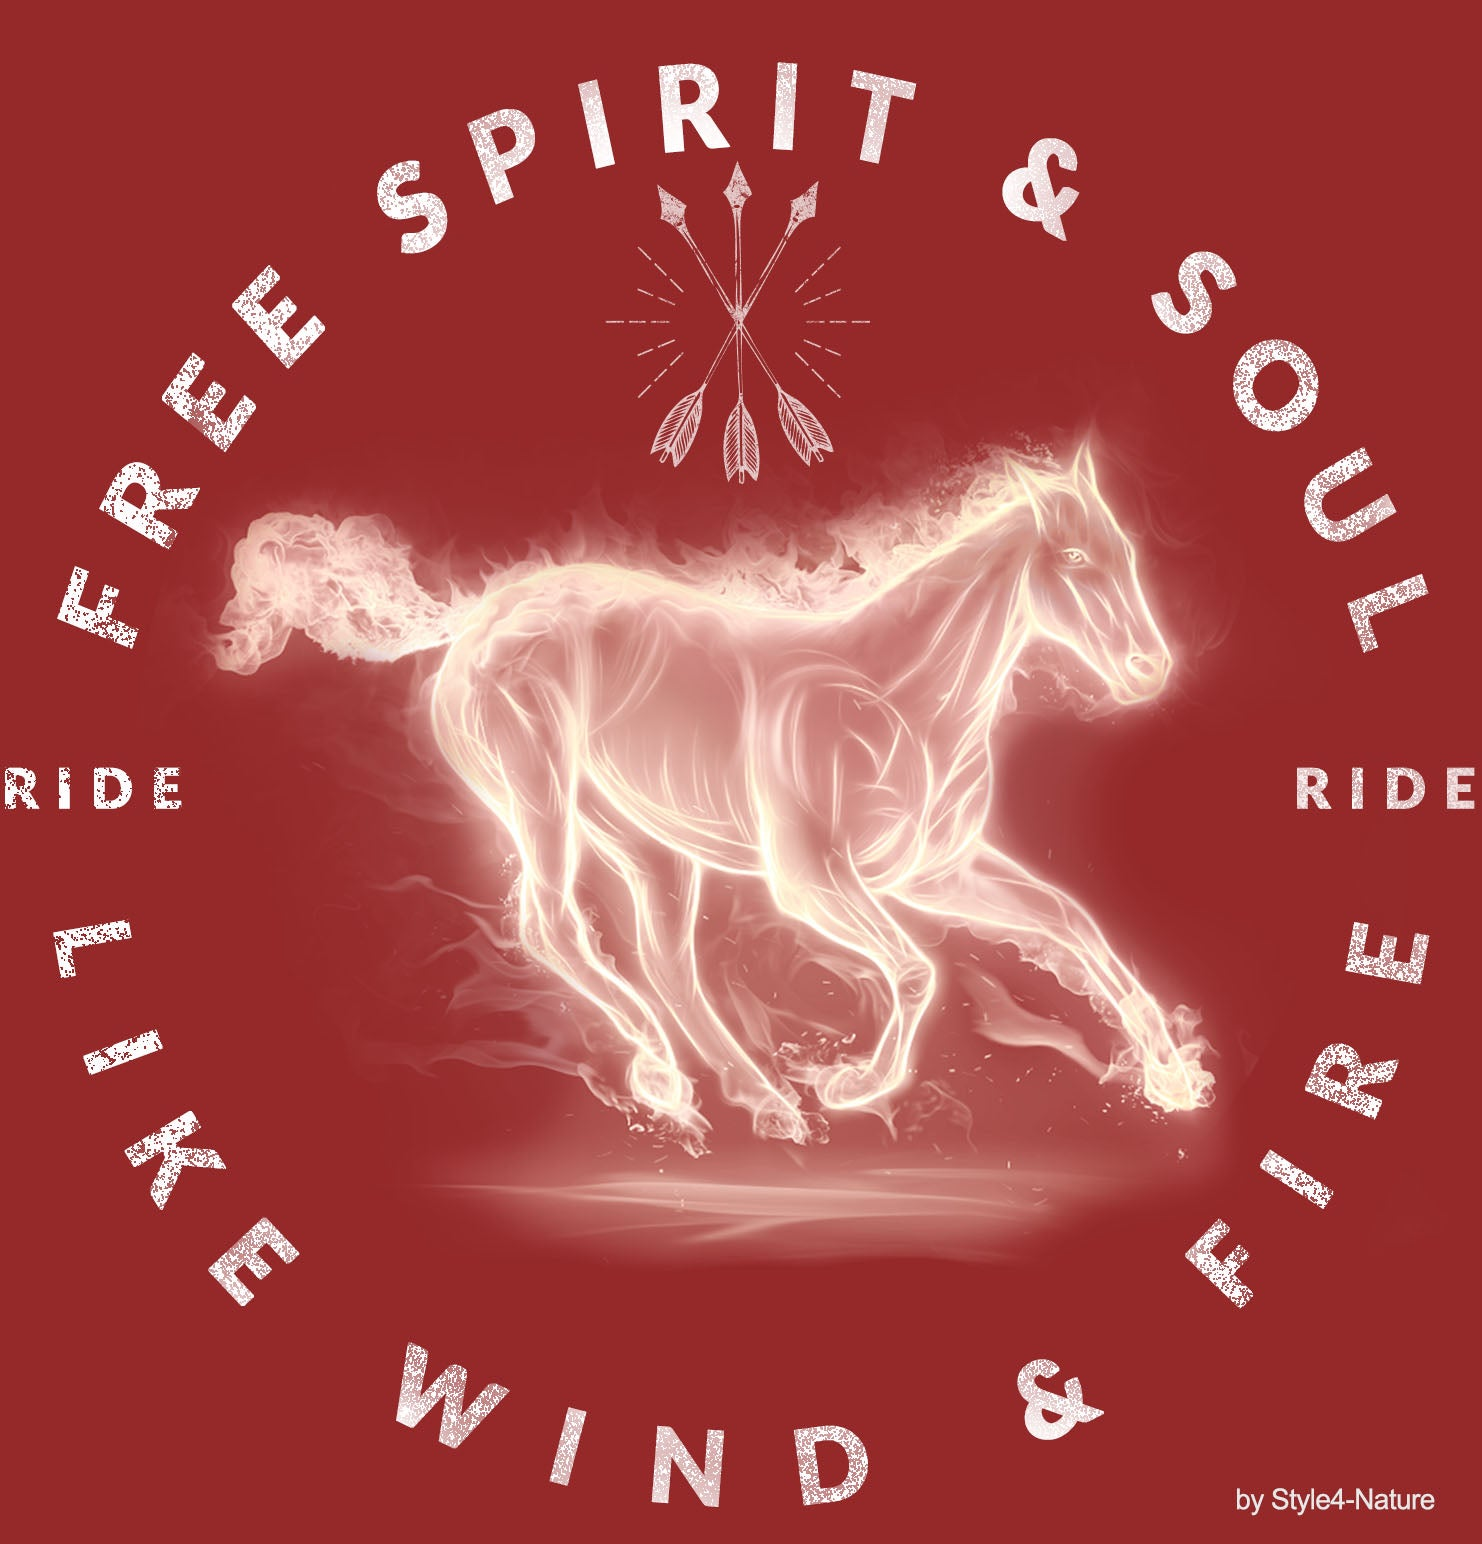 T-Shirt Ride like Wind and Fire - Free Soul & Spirit - Style4-Nature - Schmuck - Mode - Home Deko